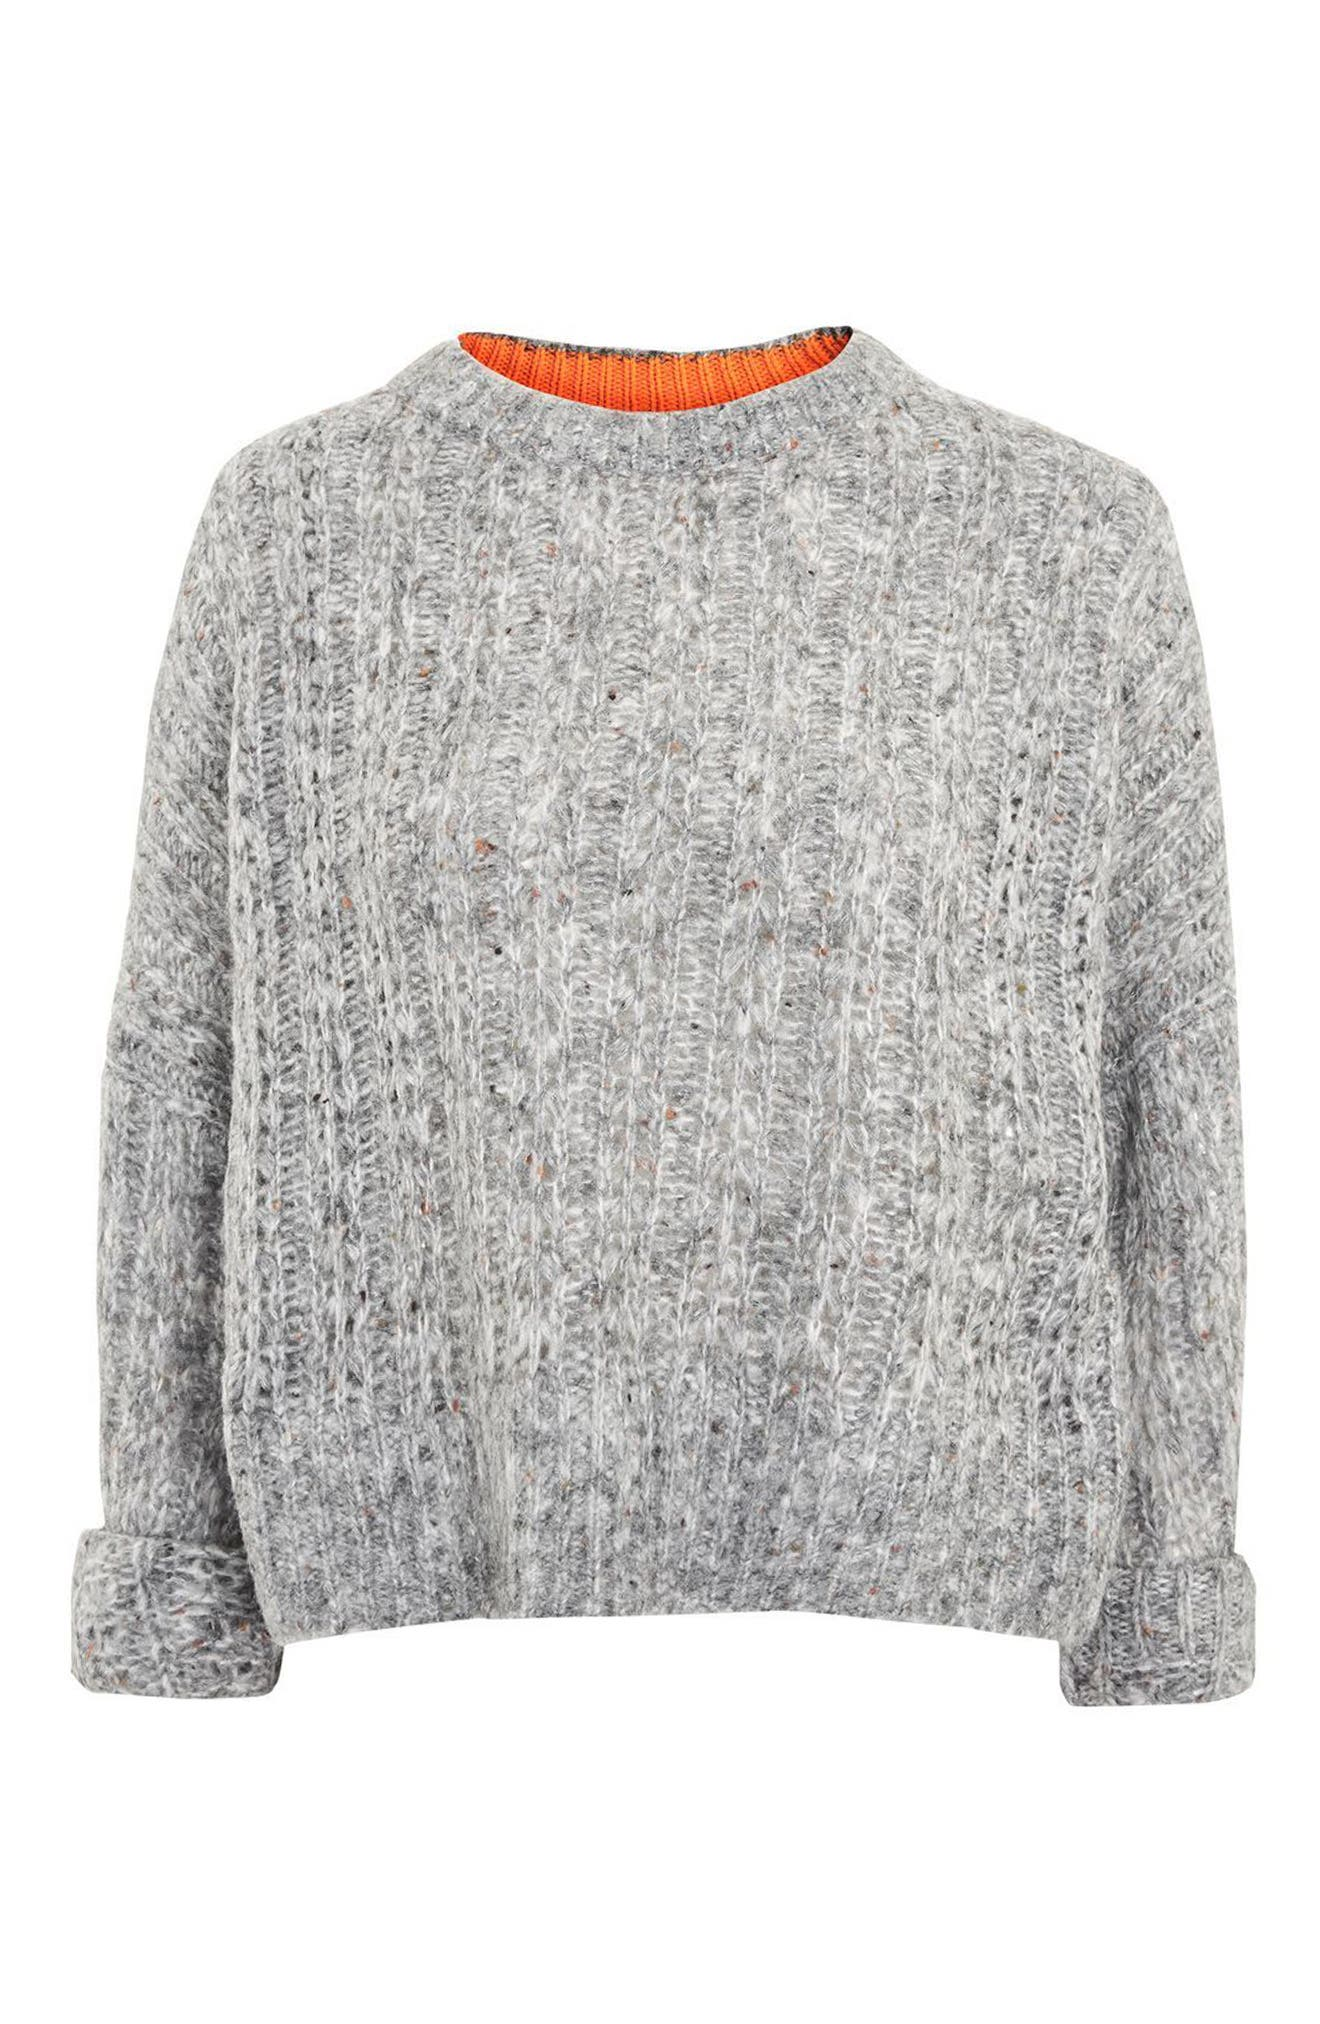 Soft Nep Sweater,                             Alternate thumbnail 5, color,                             Grey Marl Multi